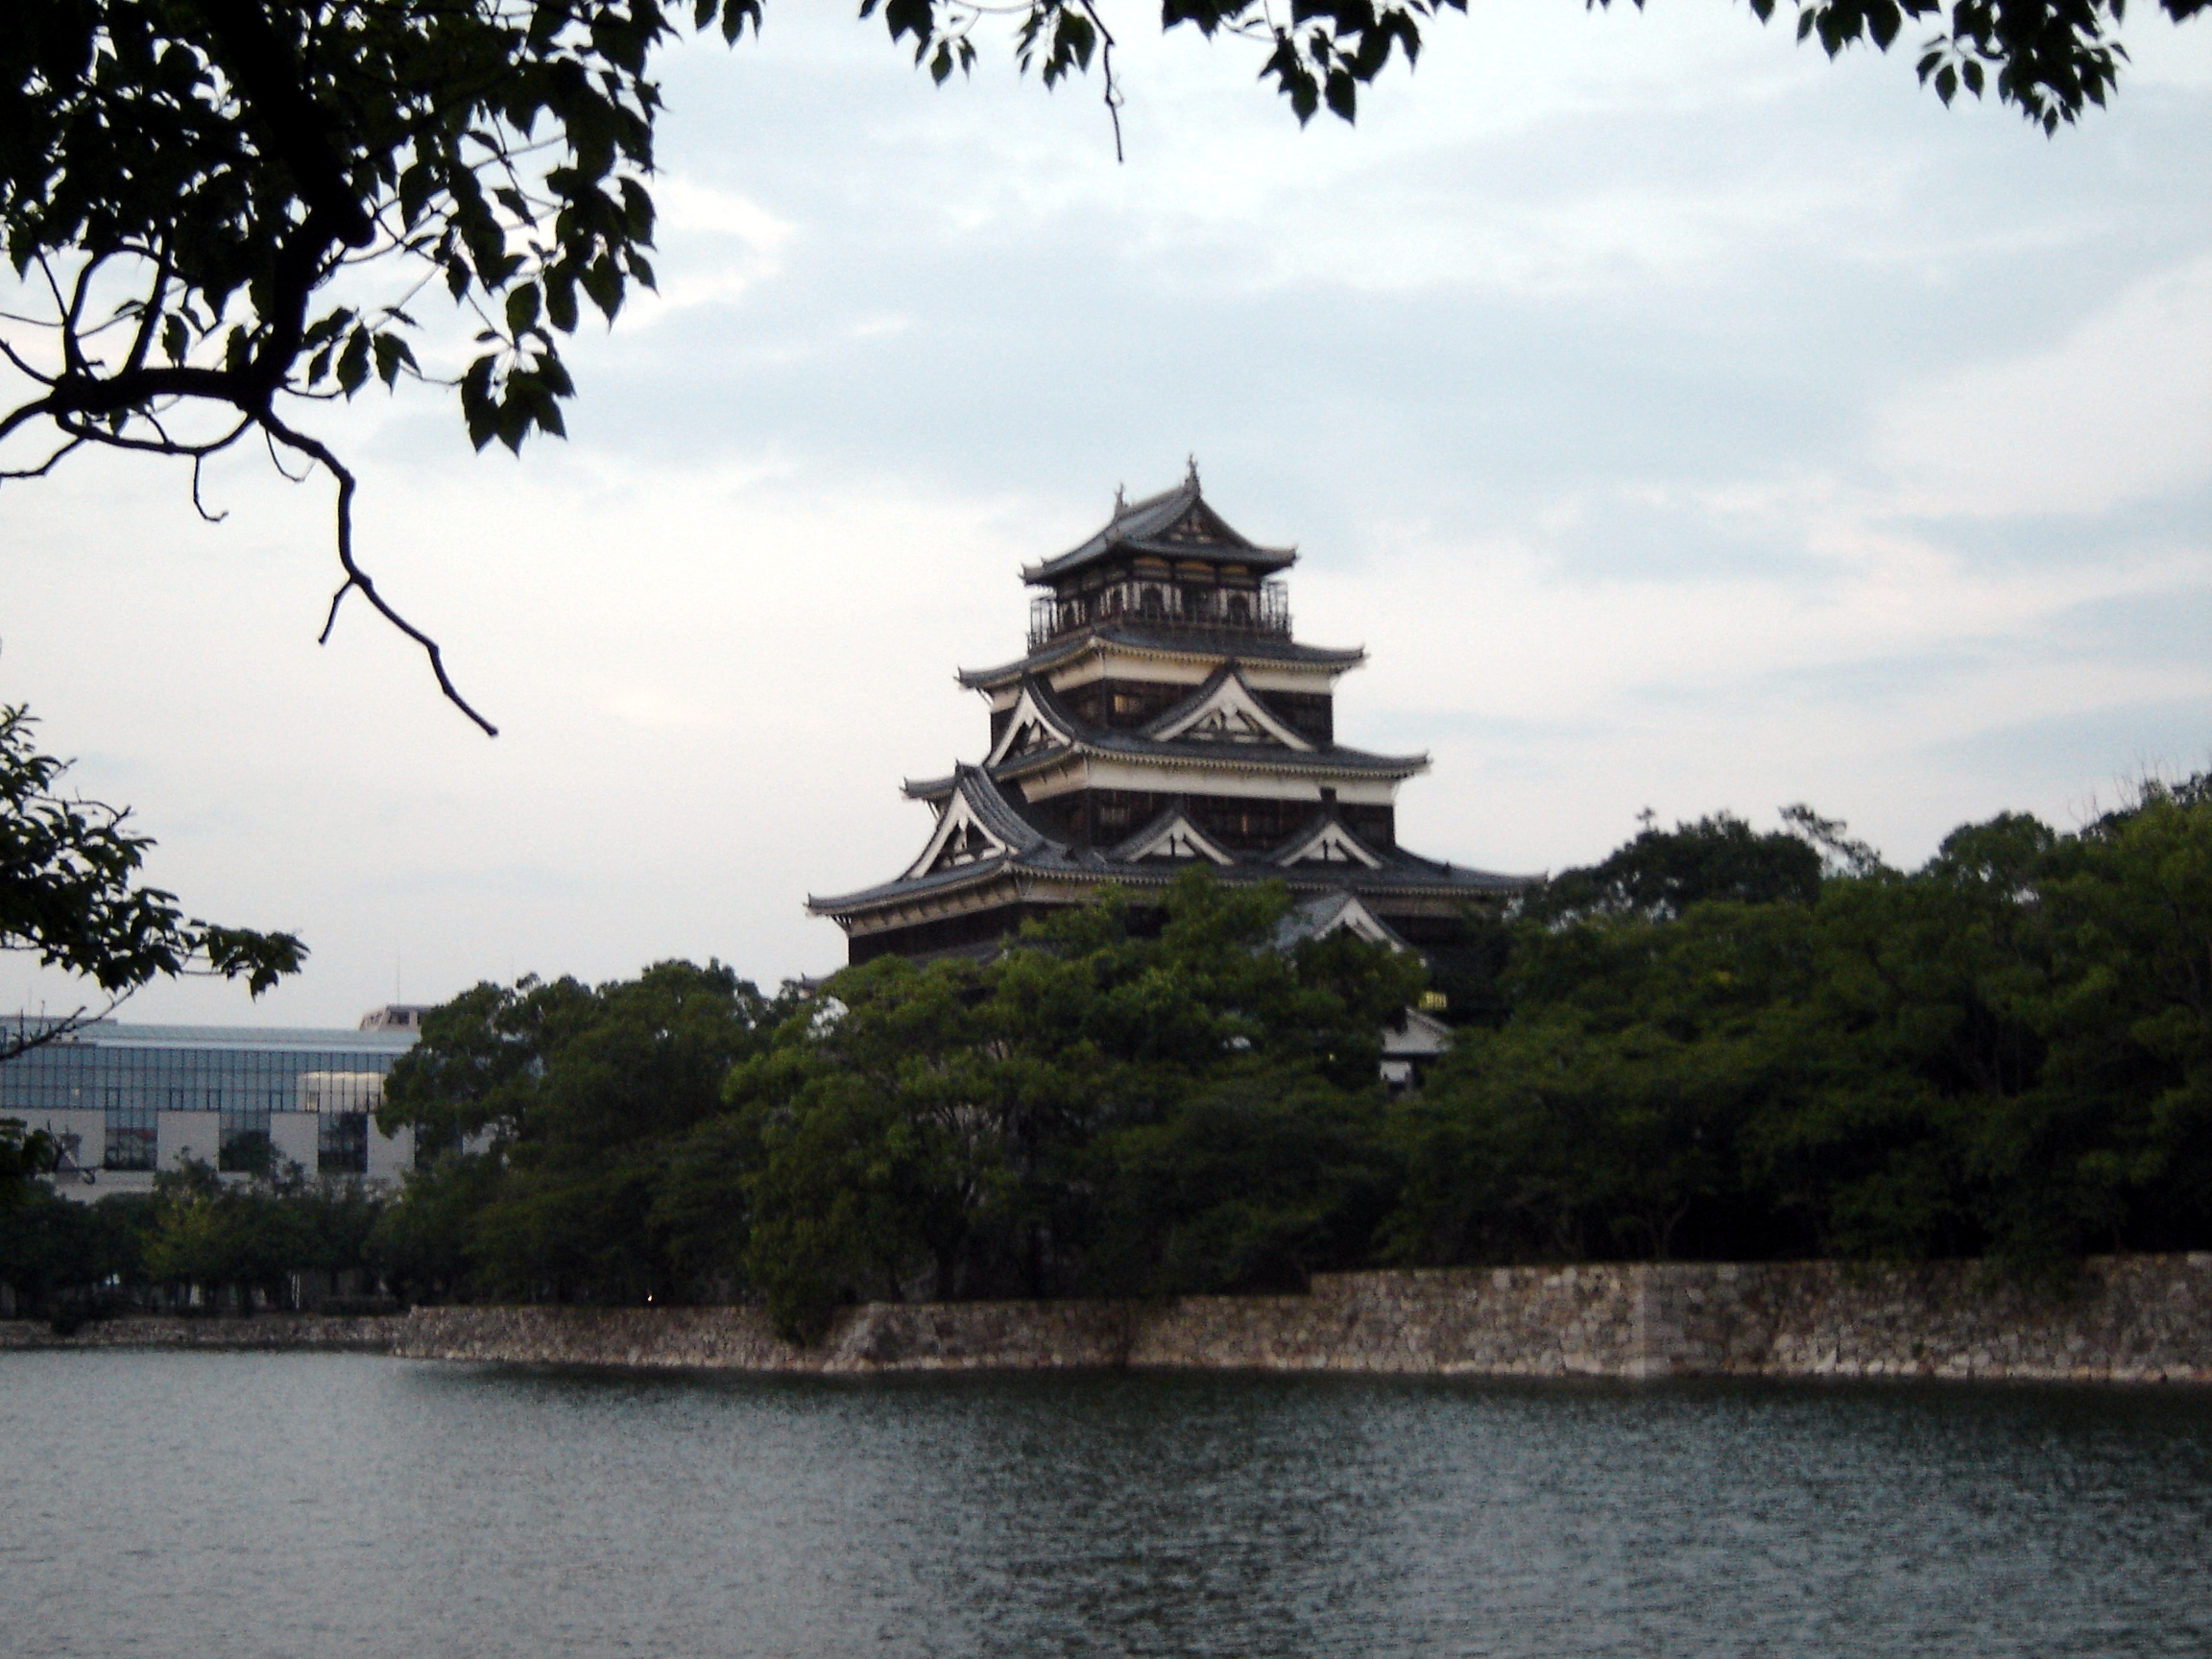 File:Hiroshima Castle.jpg - Wikipedia, the free encyclopedia